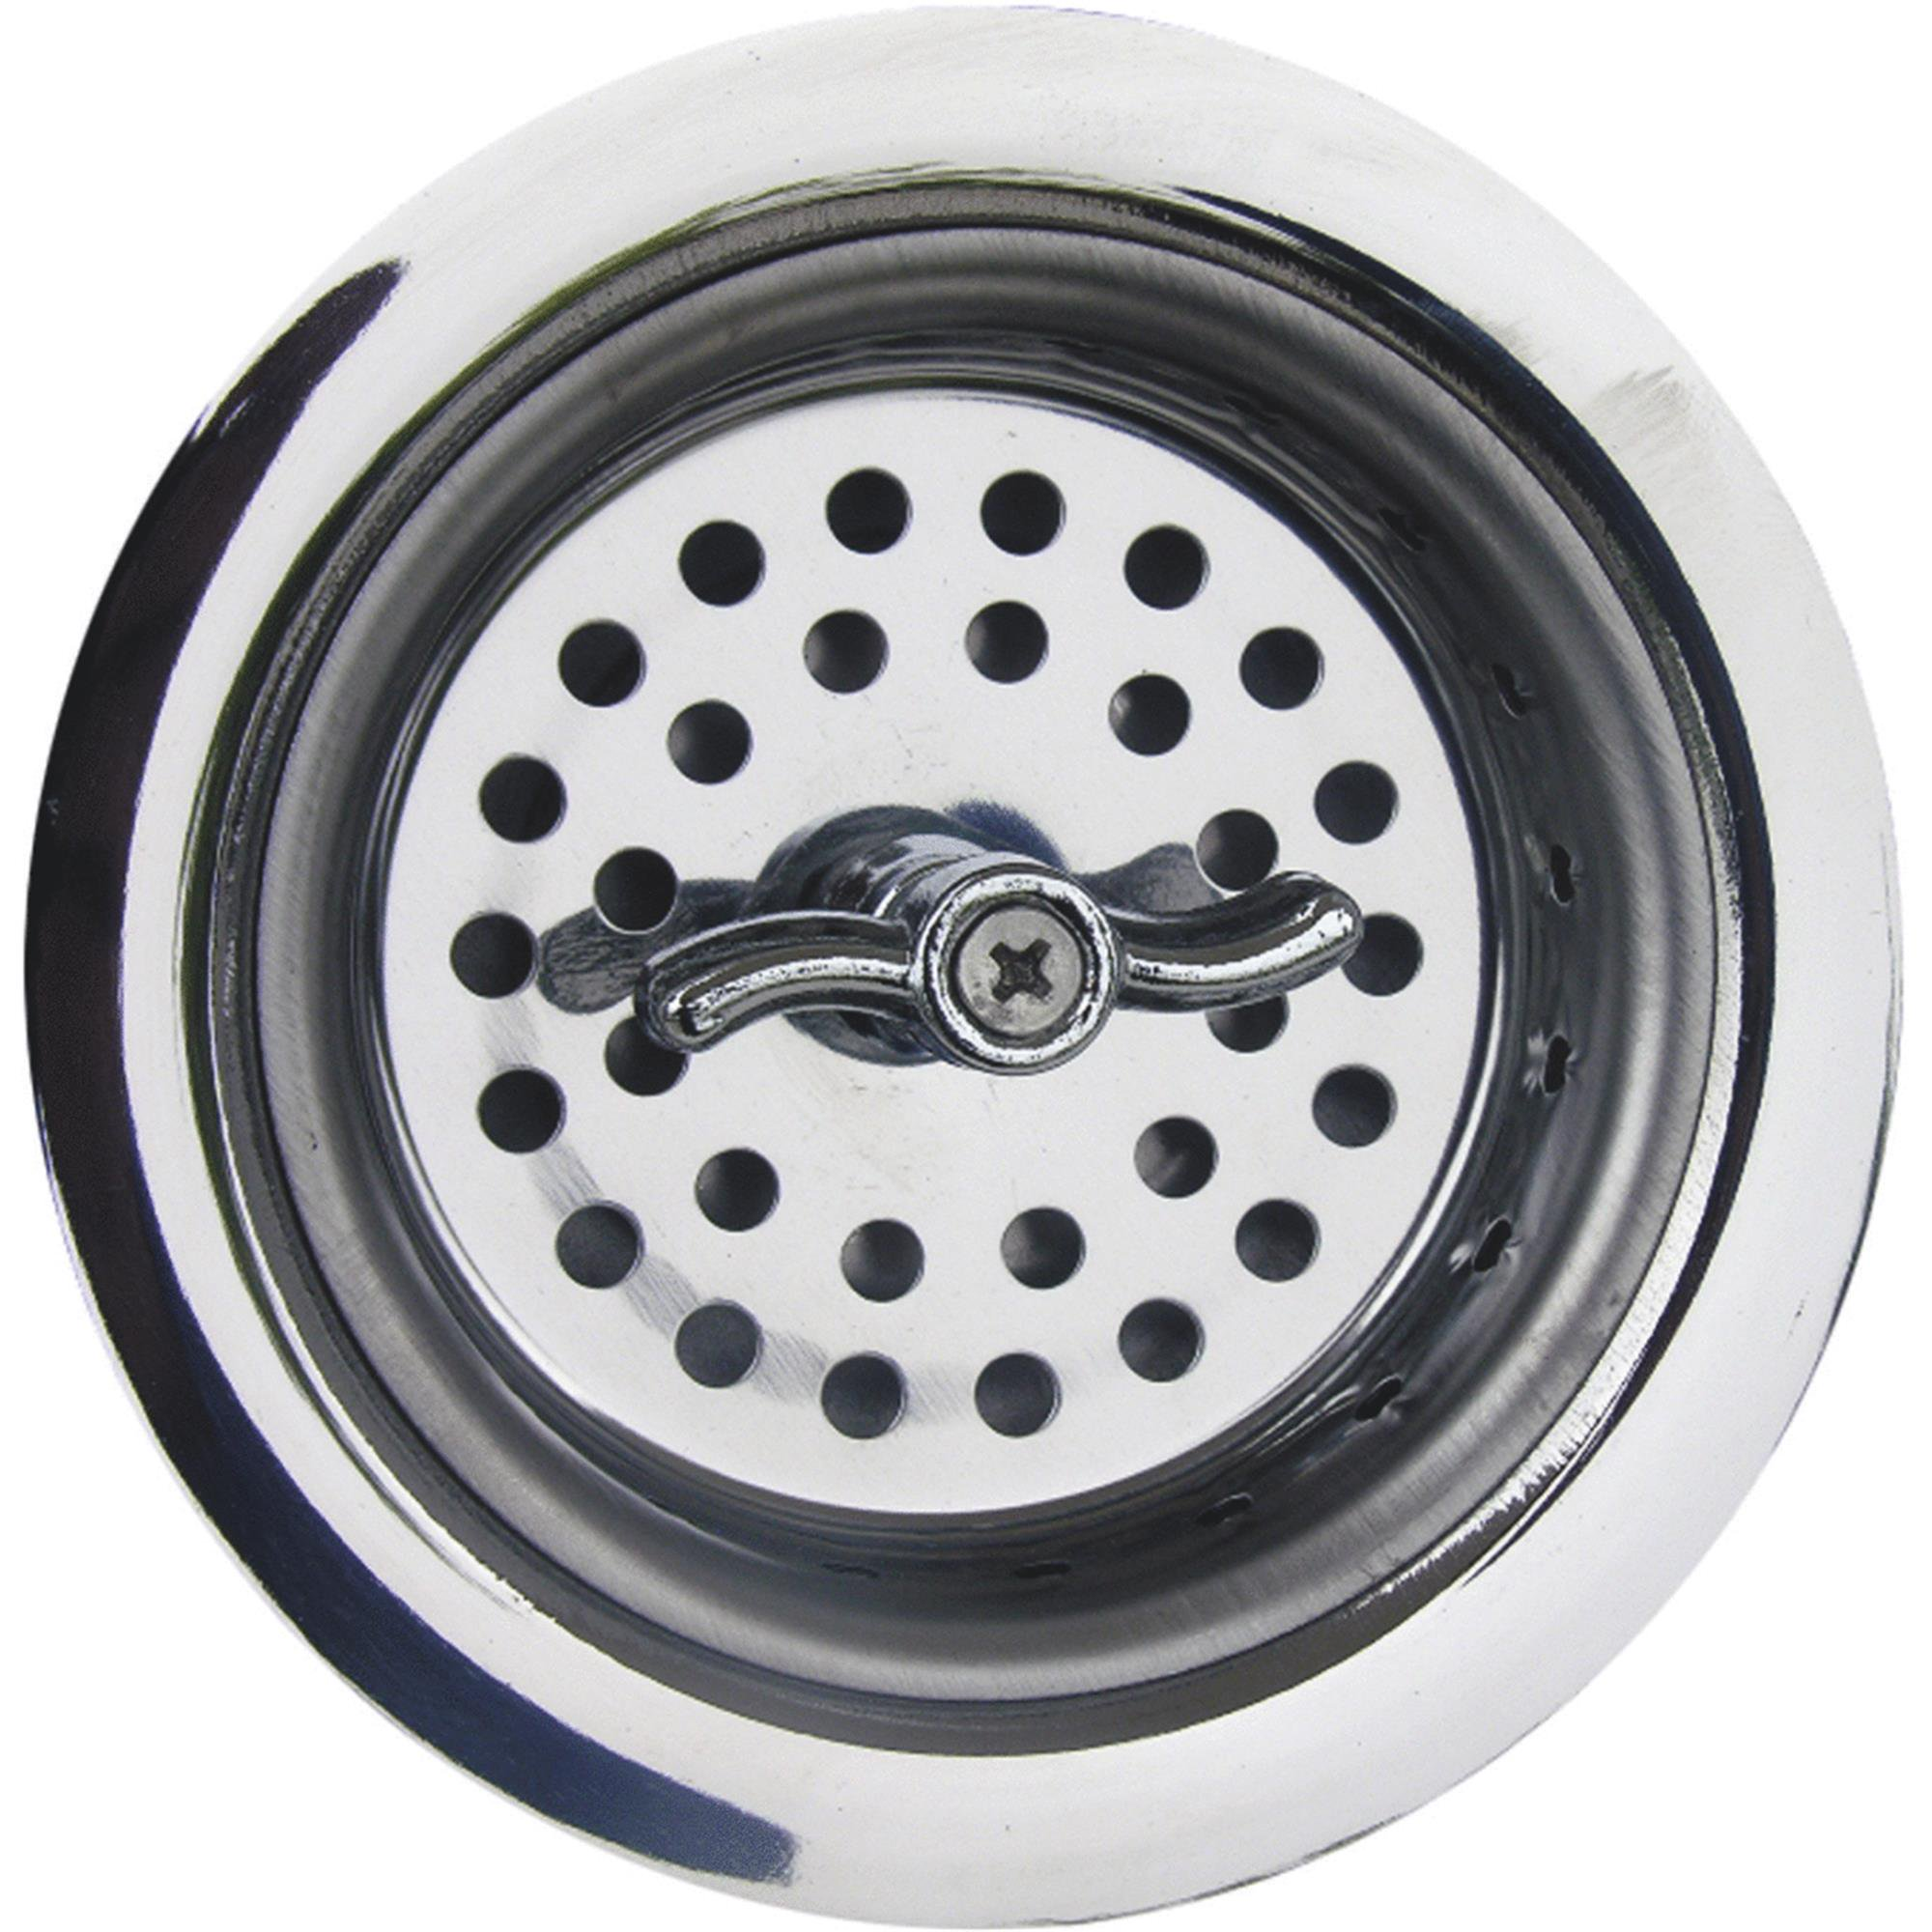 Lasco Spin Basket Strainer Assembly